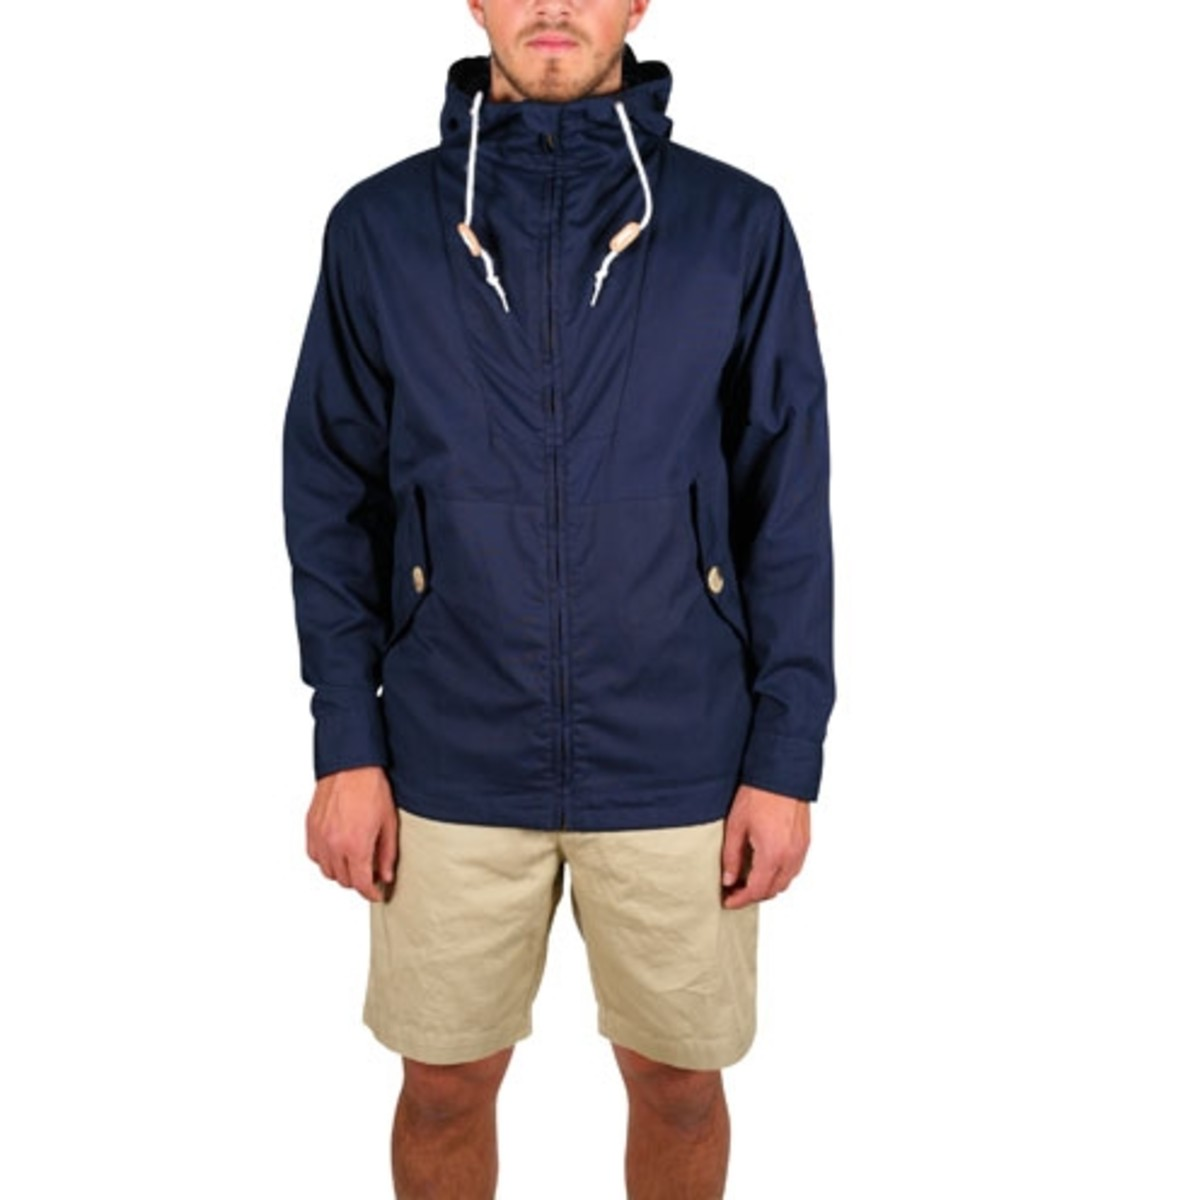 Penfield SS2011 Jackets 37